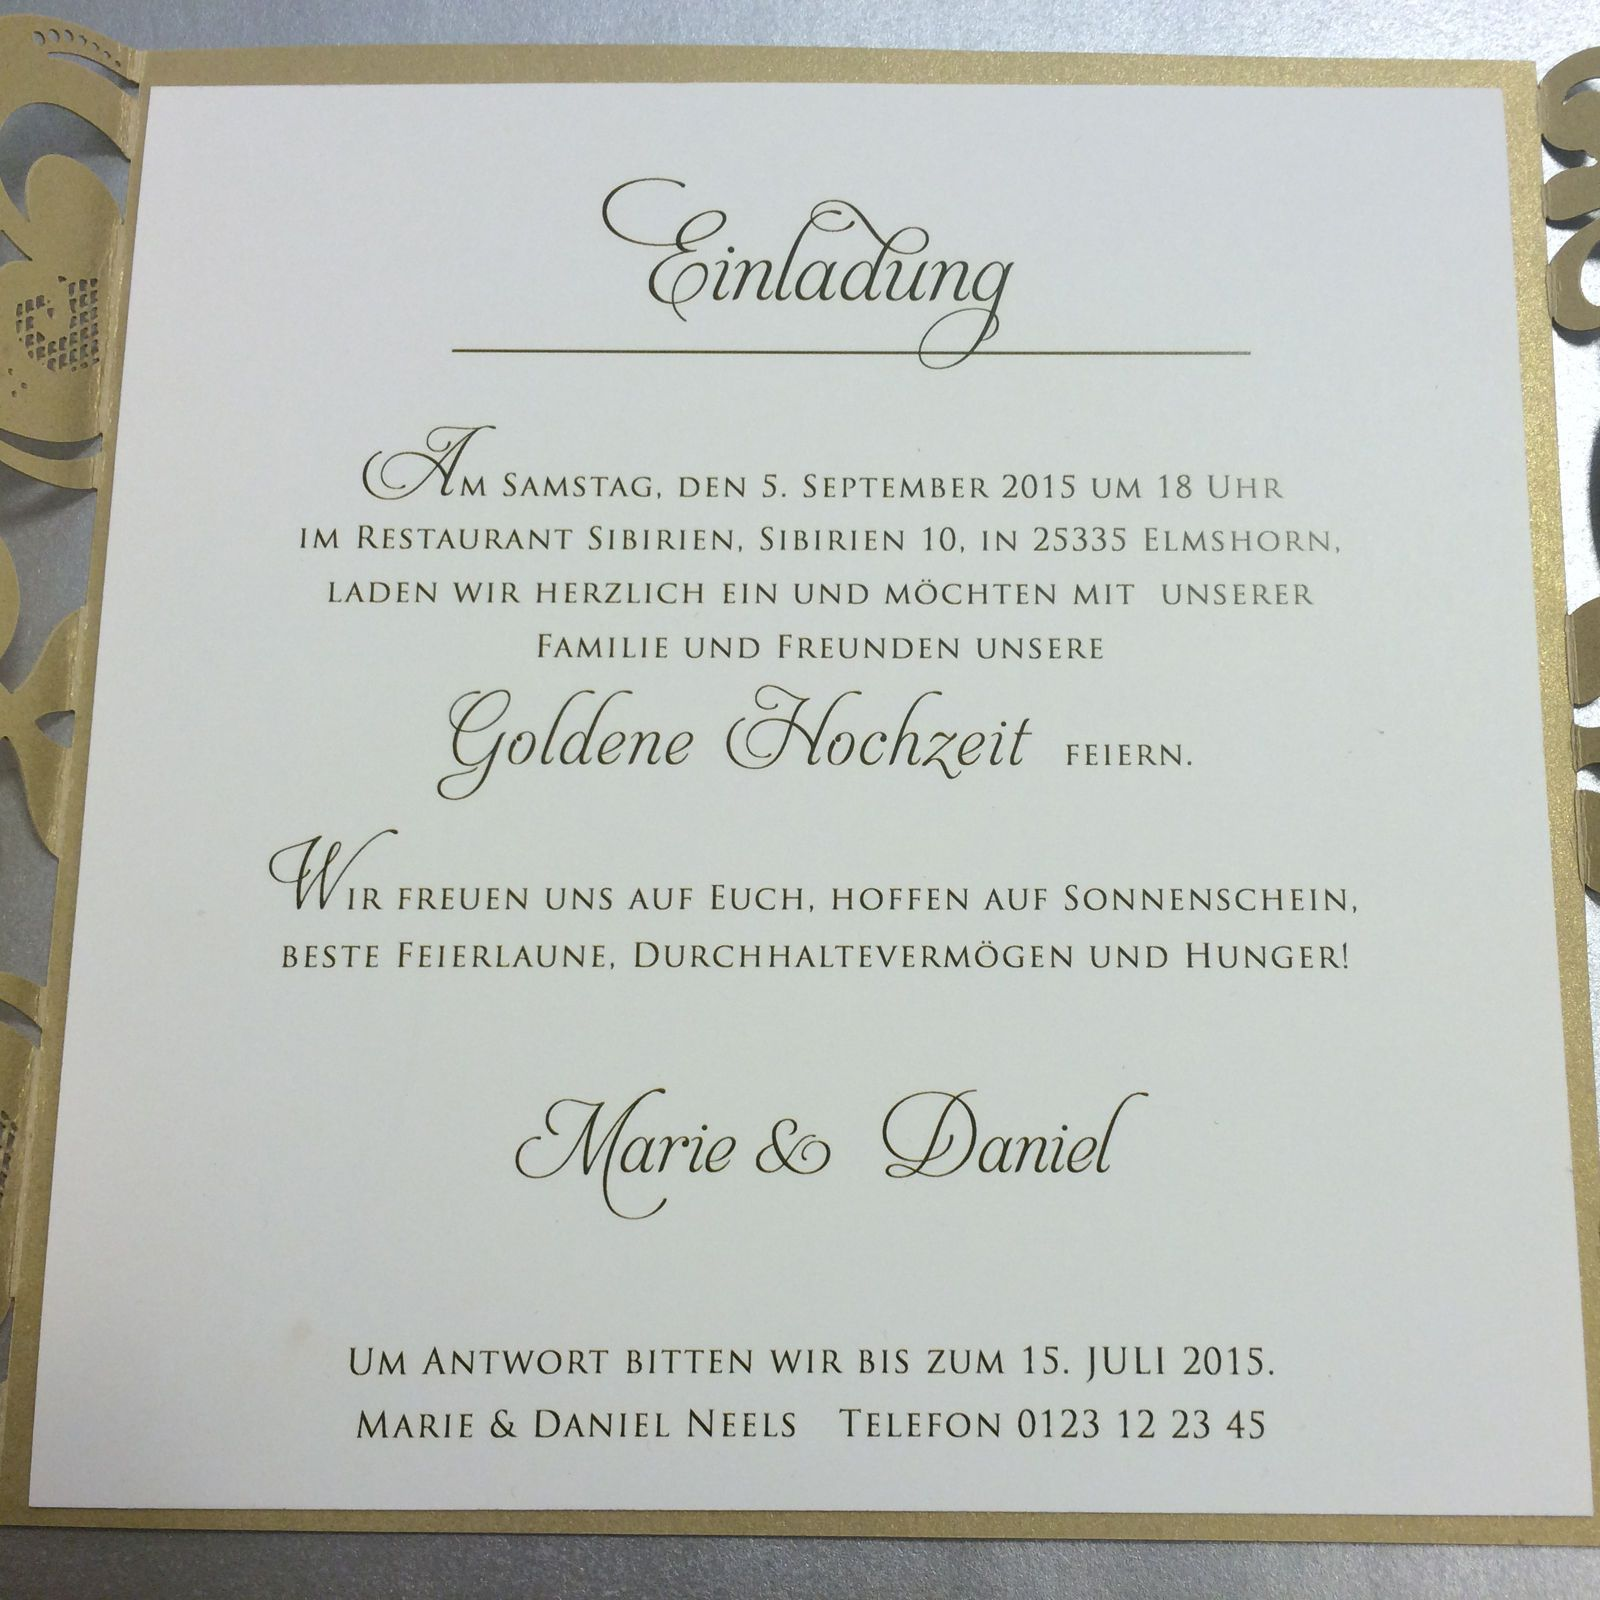 Einladungskarten Hochzeit Einladungskarten Hochzeit Online Einladungskarten Onlin Einladung Goldene Hochzeit Einladungen Hochzeit Einladung Hochzeit Text